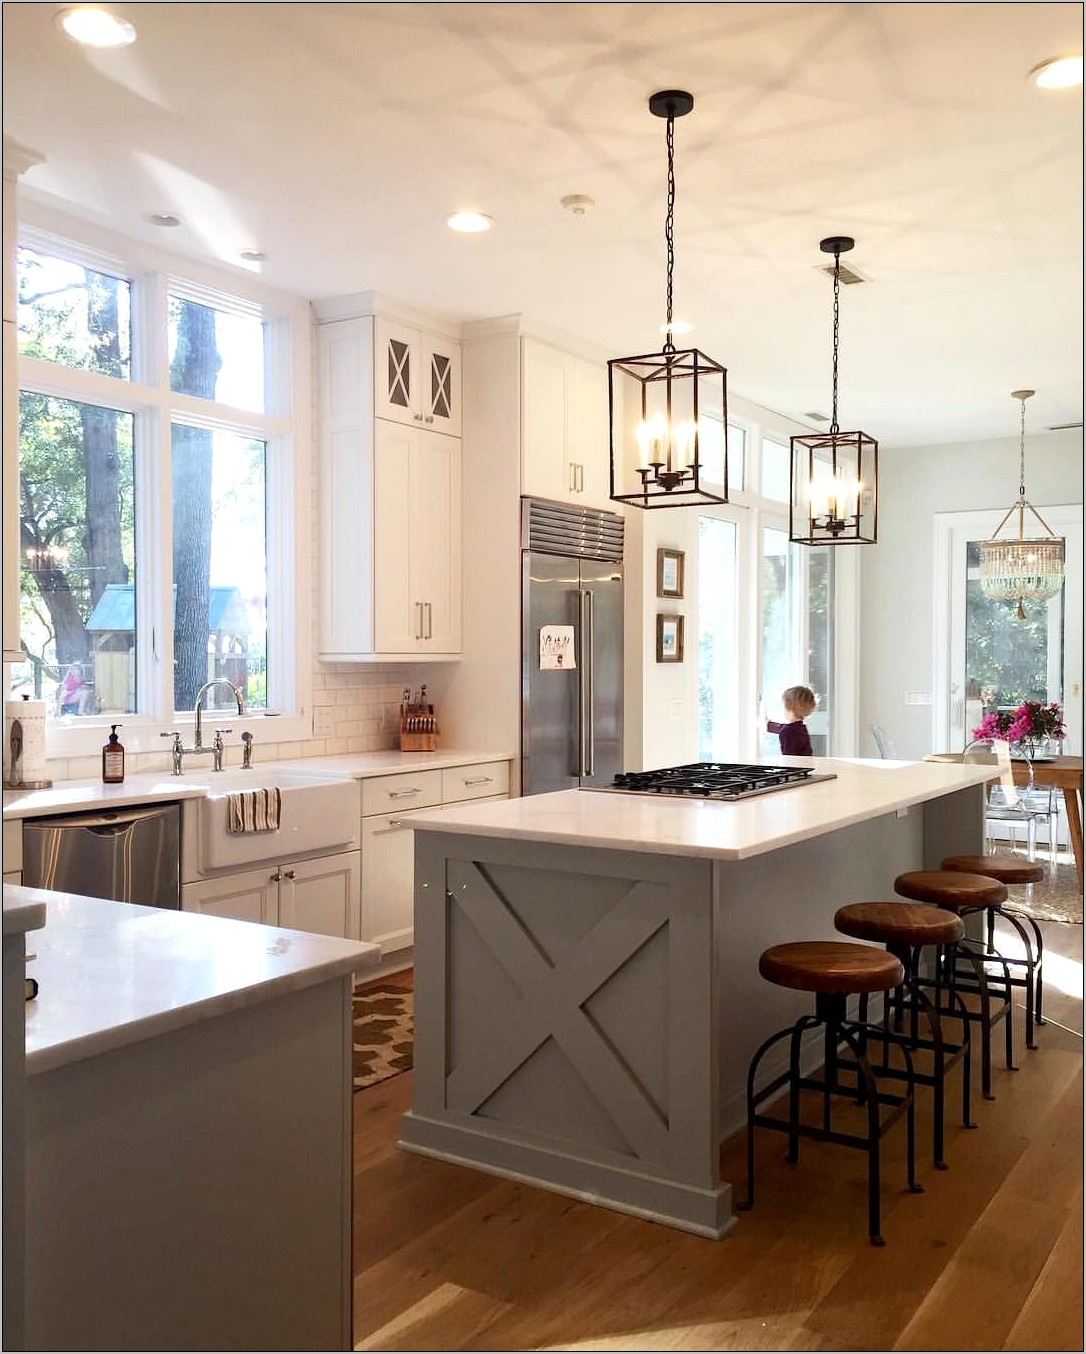 Decorating Kitchen Island With Lanterns